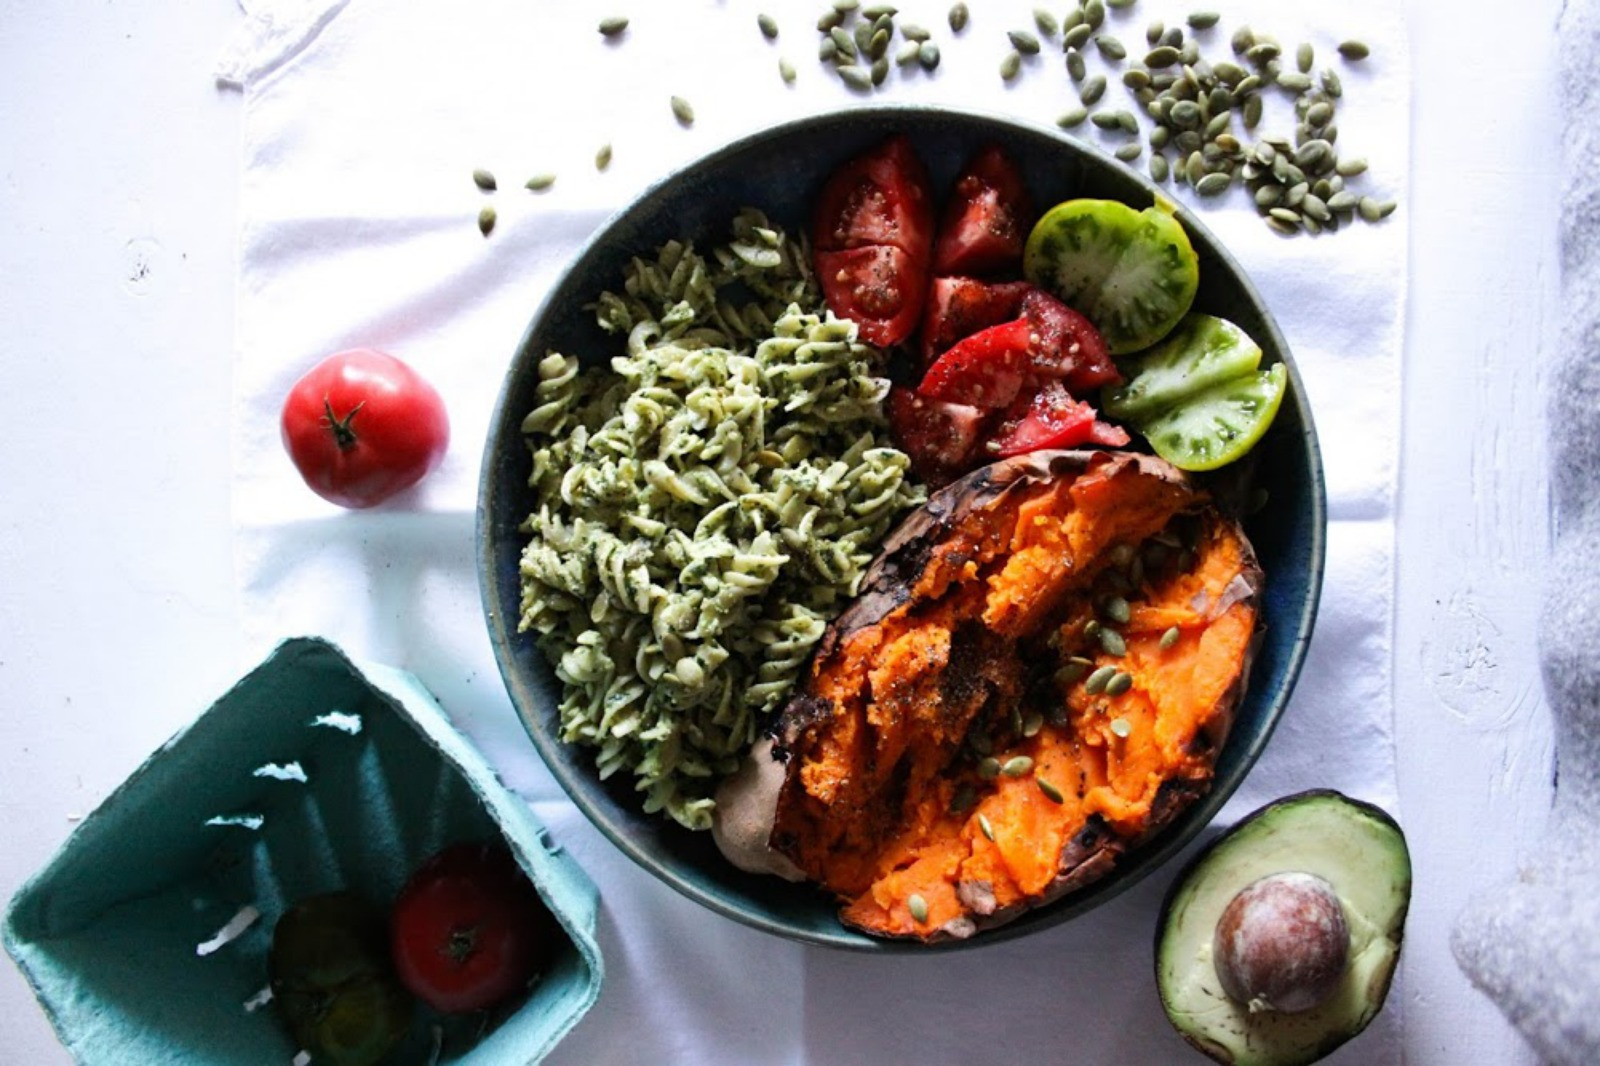 The Glow Bowl: Baked Sweet Potato With Pesto Pasta, Tomatoes and Pumpkin Seeds